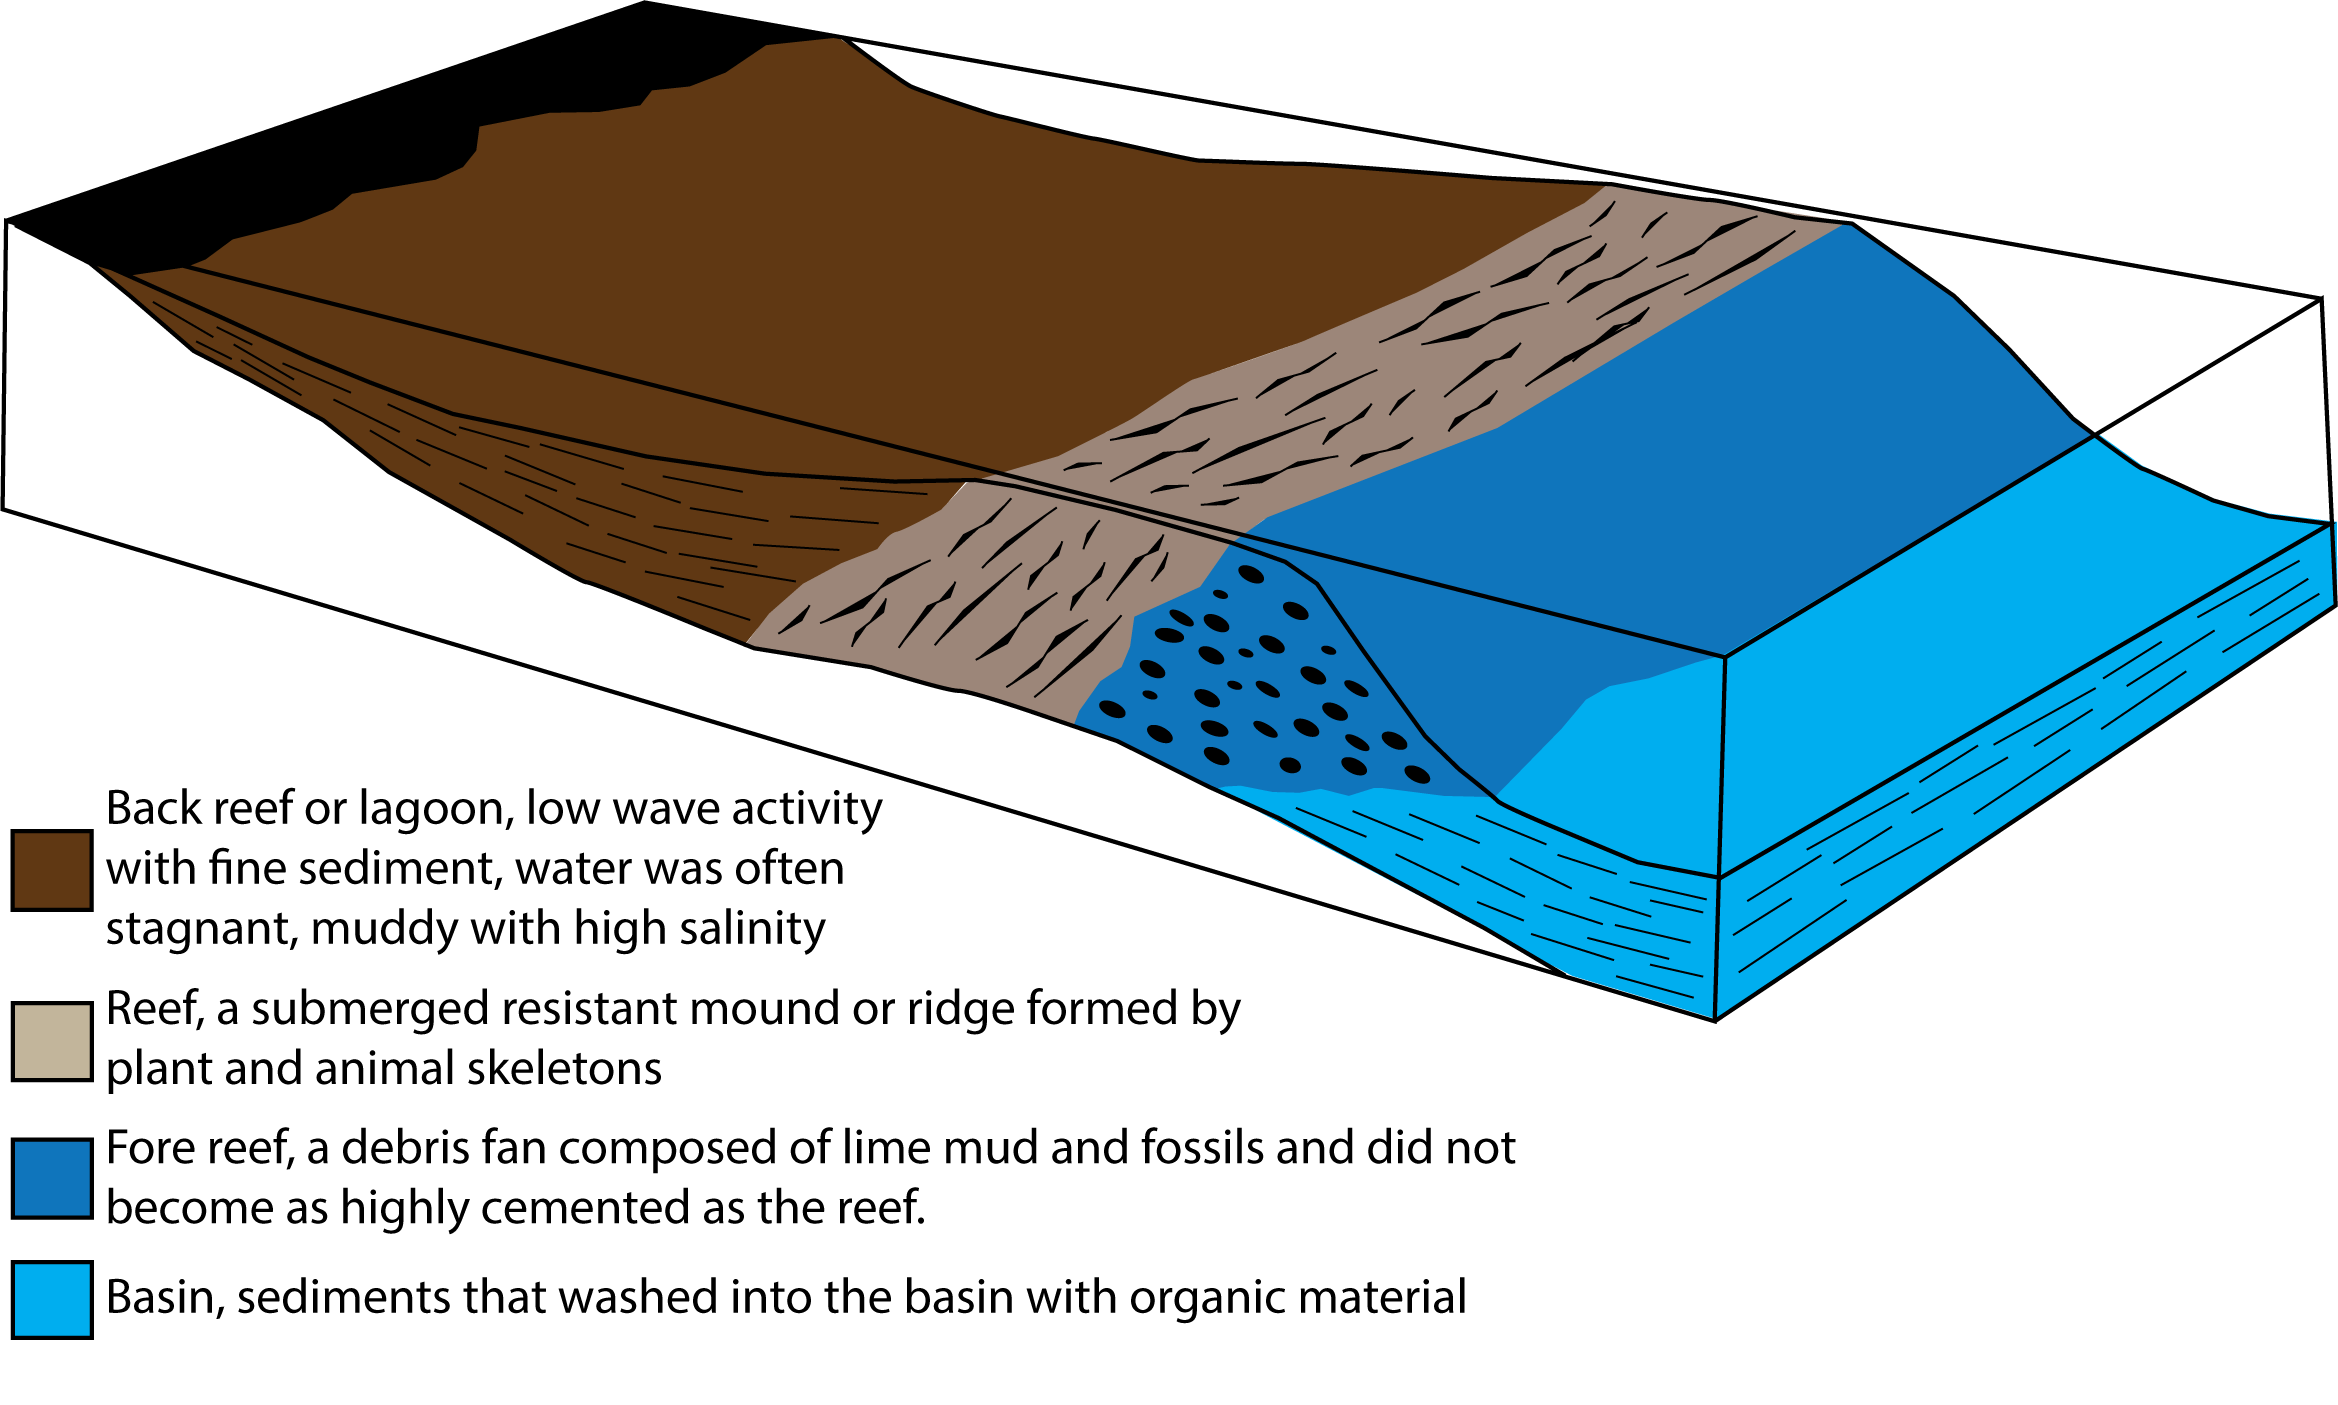 Schematic cross-section across a reef showing the back-reef, reef and fore reef as well as the marine basin